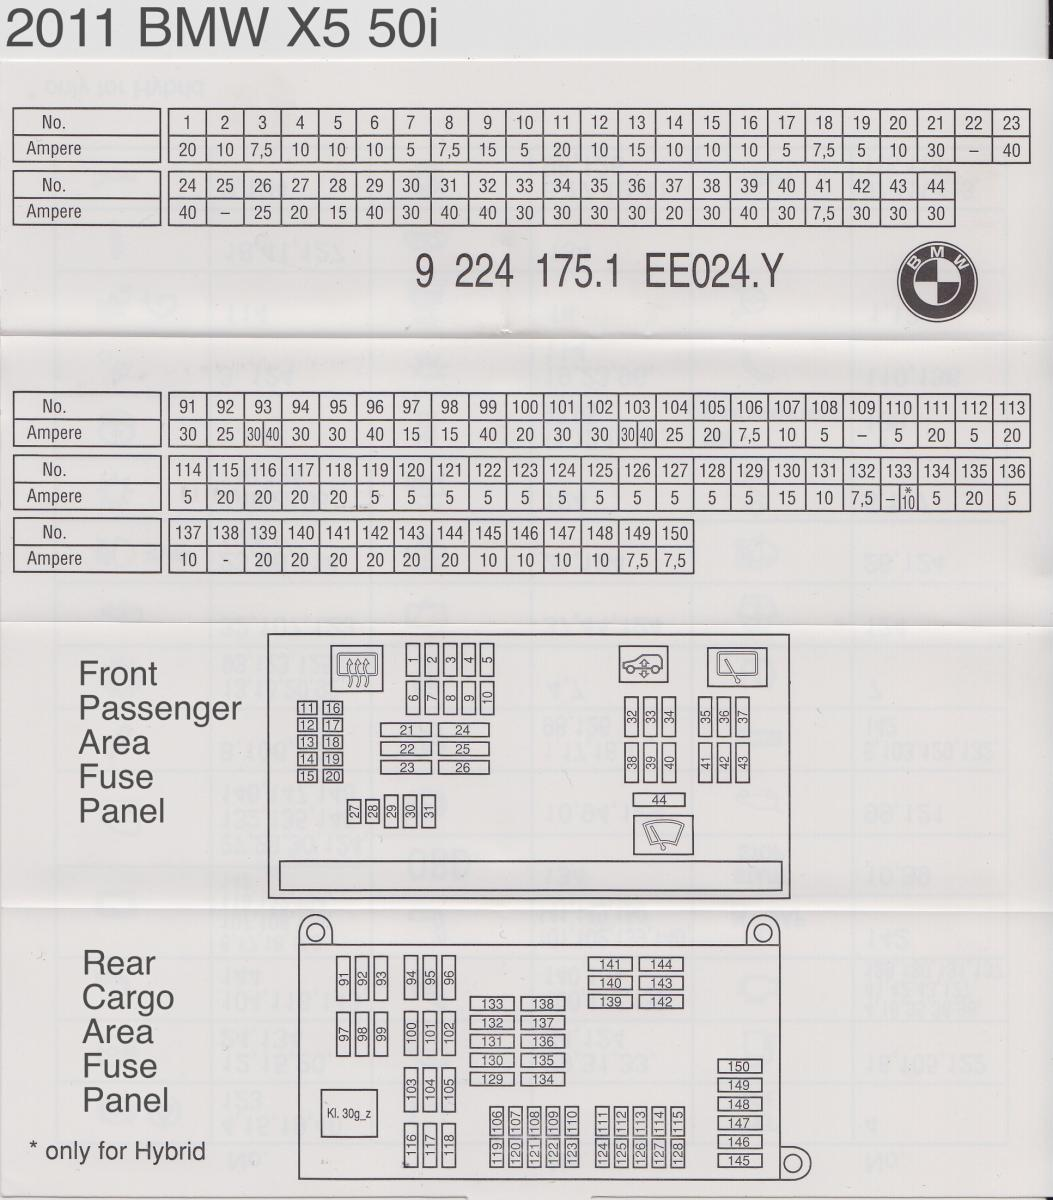 2009 x5 fuse panel layout - bimmerfest - bmw forums 2005 bmw x5 fuse box diagram 2007 bmw x5 e70 fuse box location bimmerfest